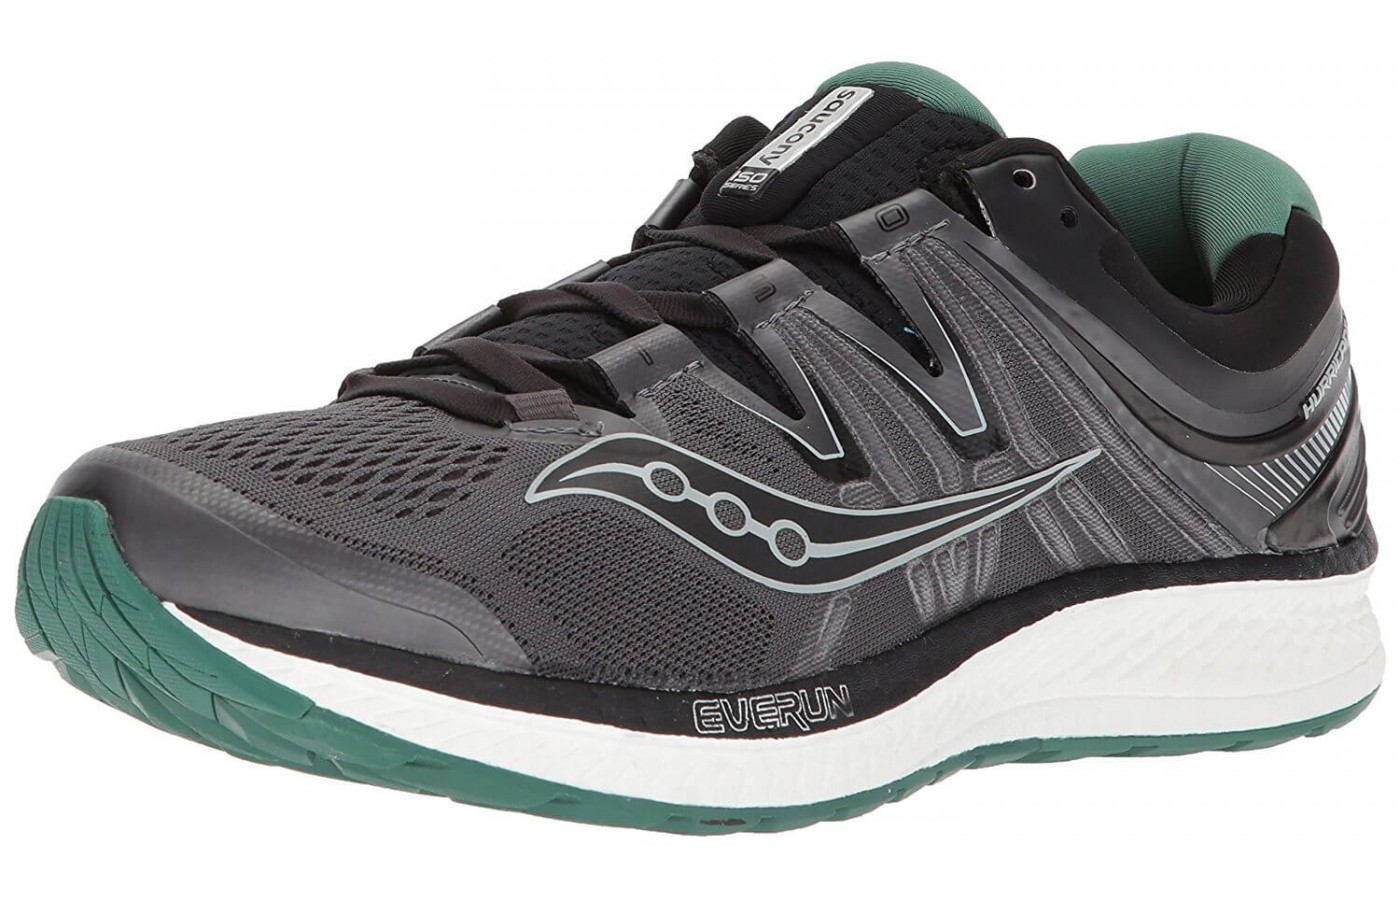 The Saucony Hurricane ISO 4 has an 8mm drop height